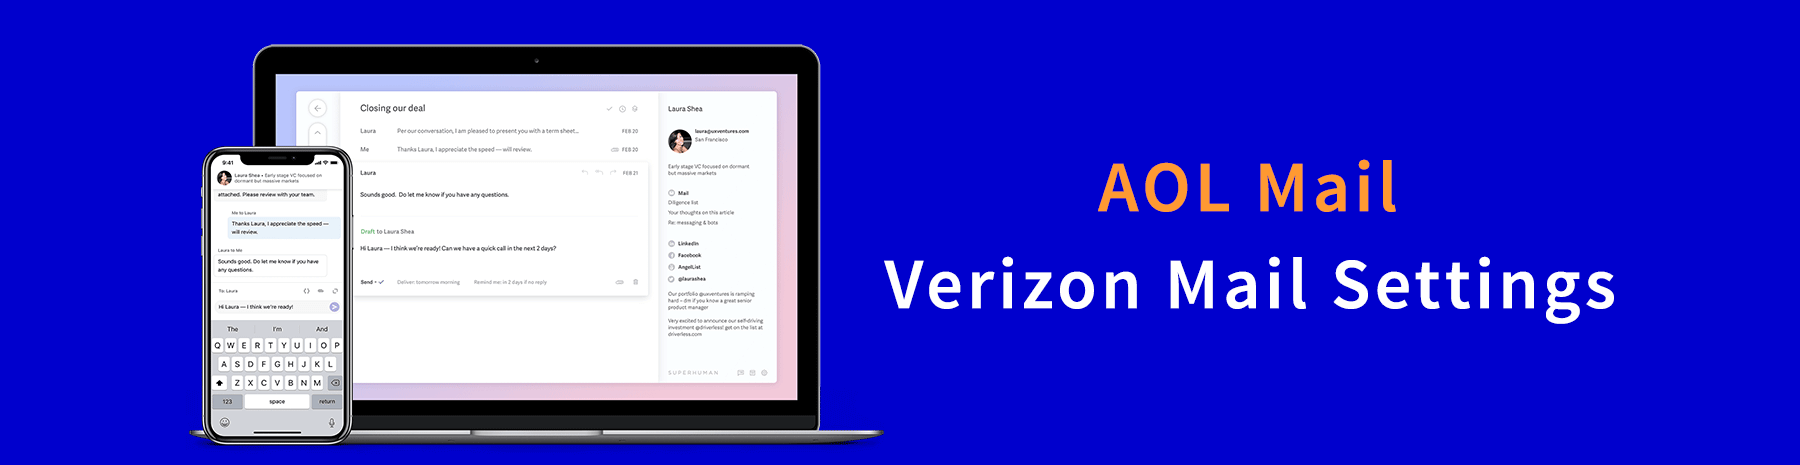 AOL Verizon Mail Settings